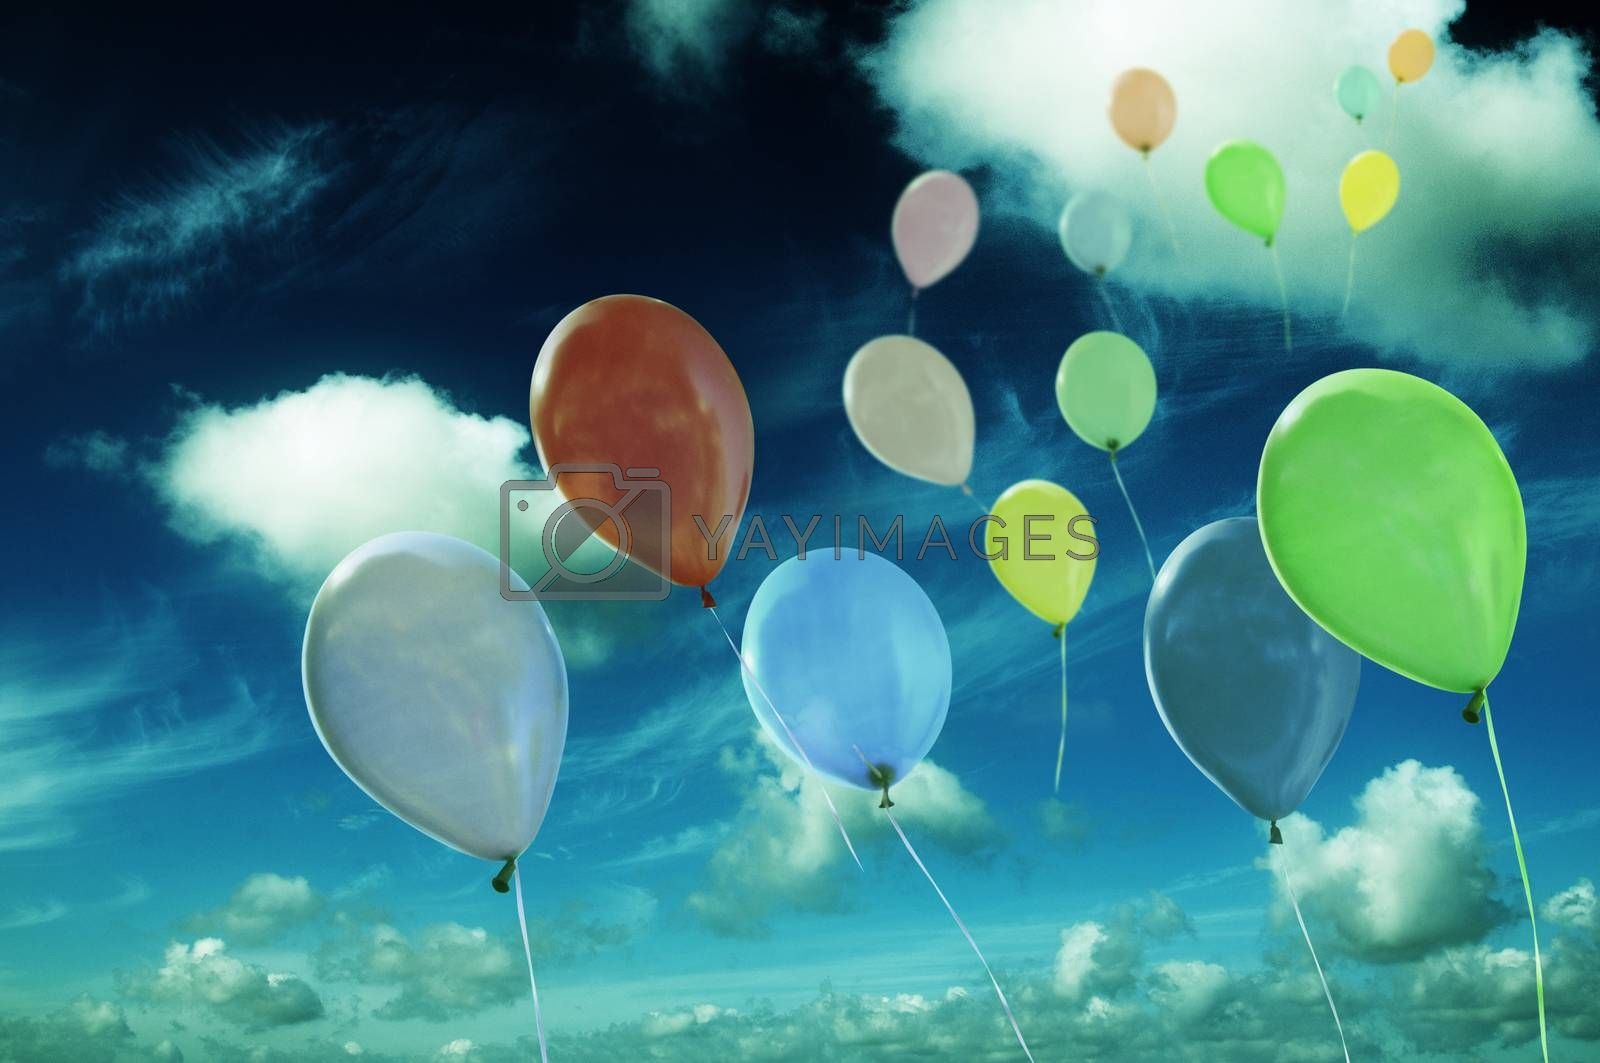 Royalty free image of colored ballons against cloudy sky by fotoCD